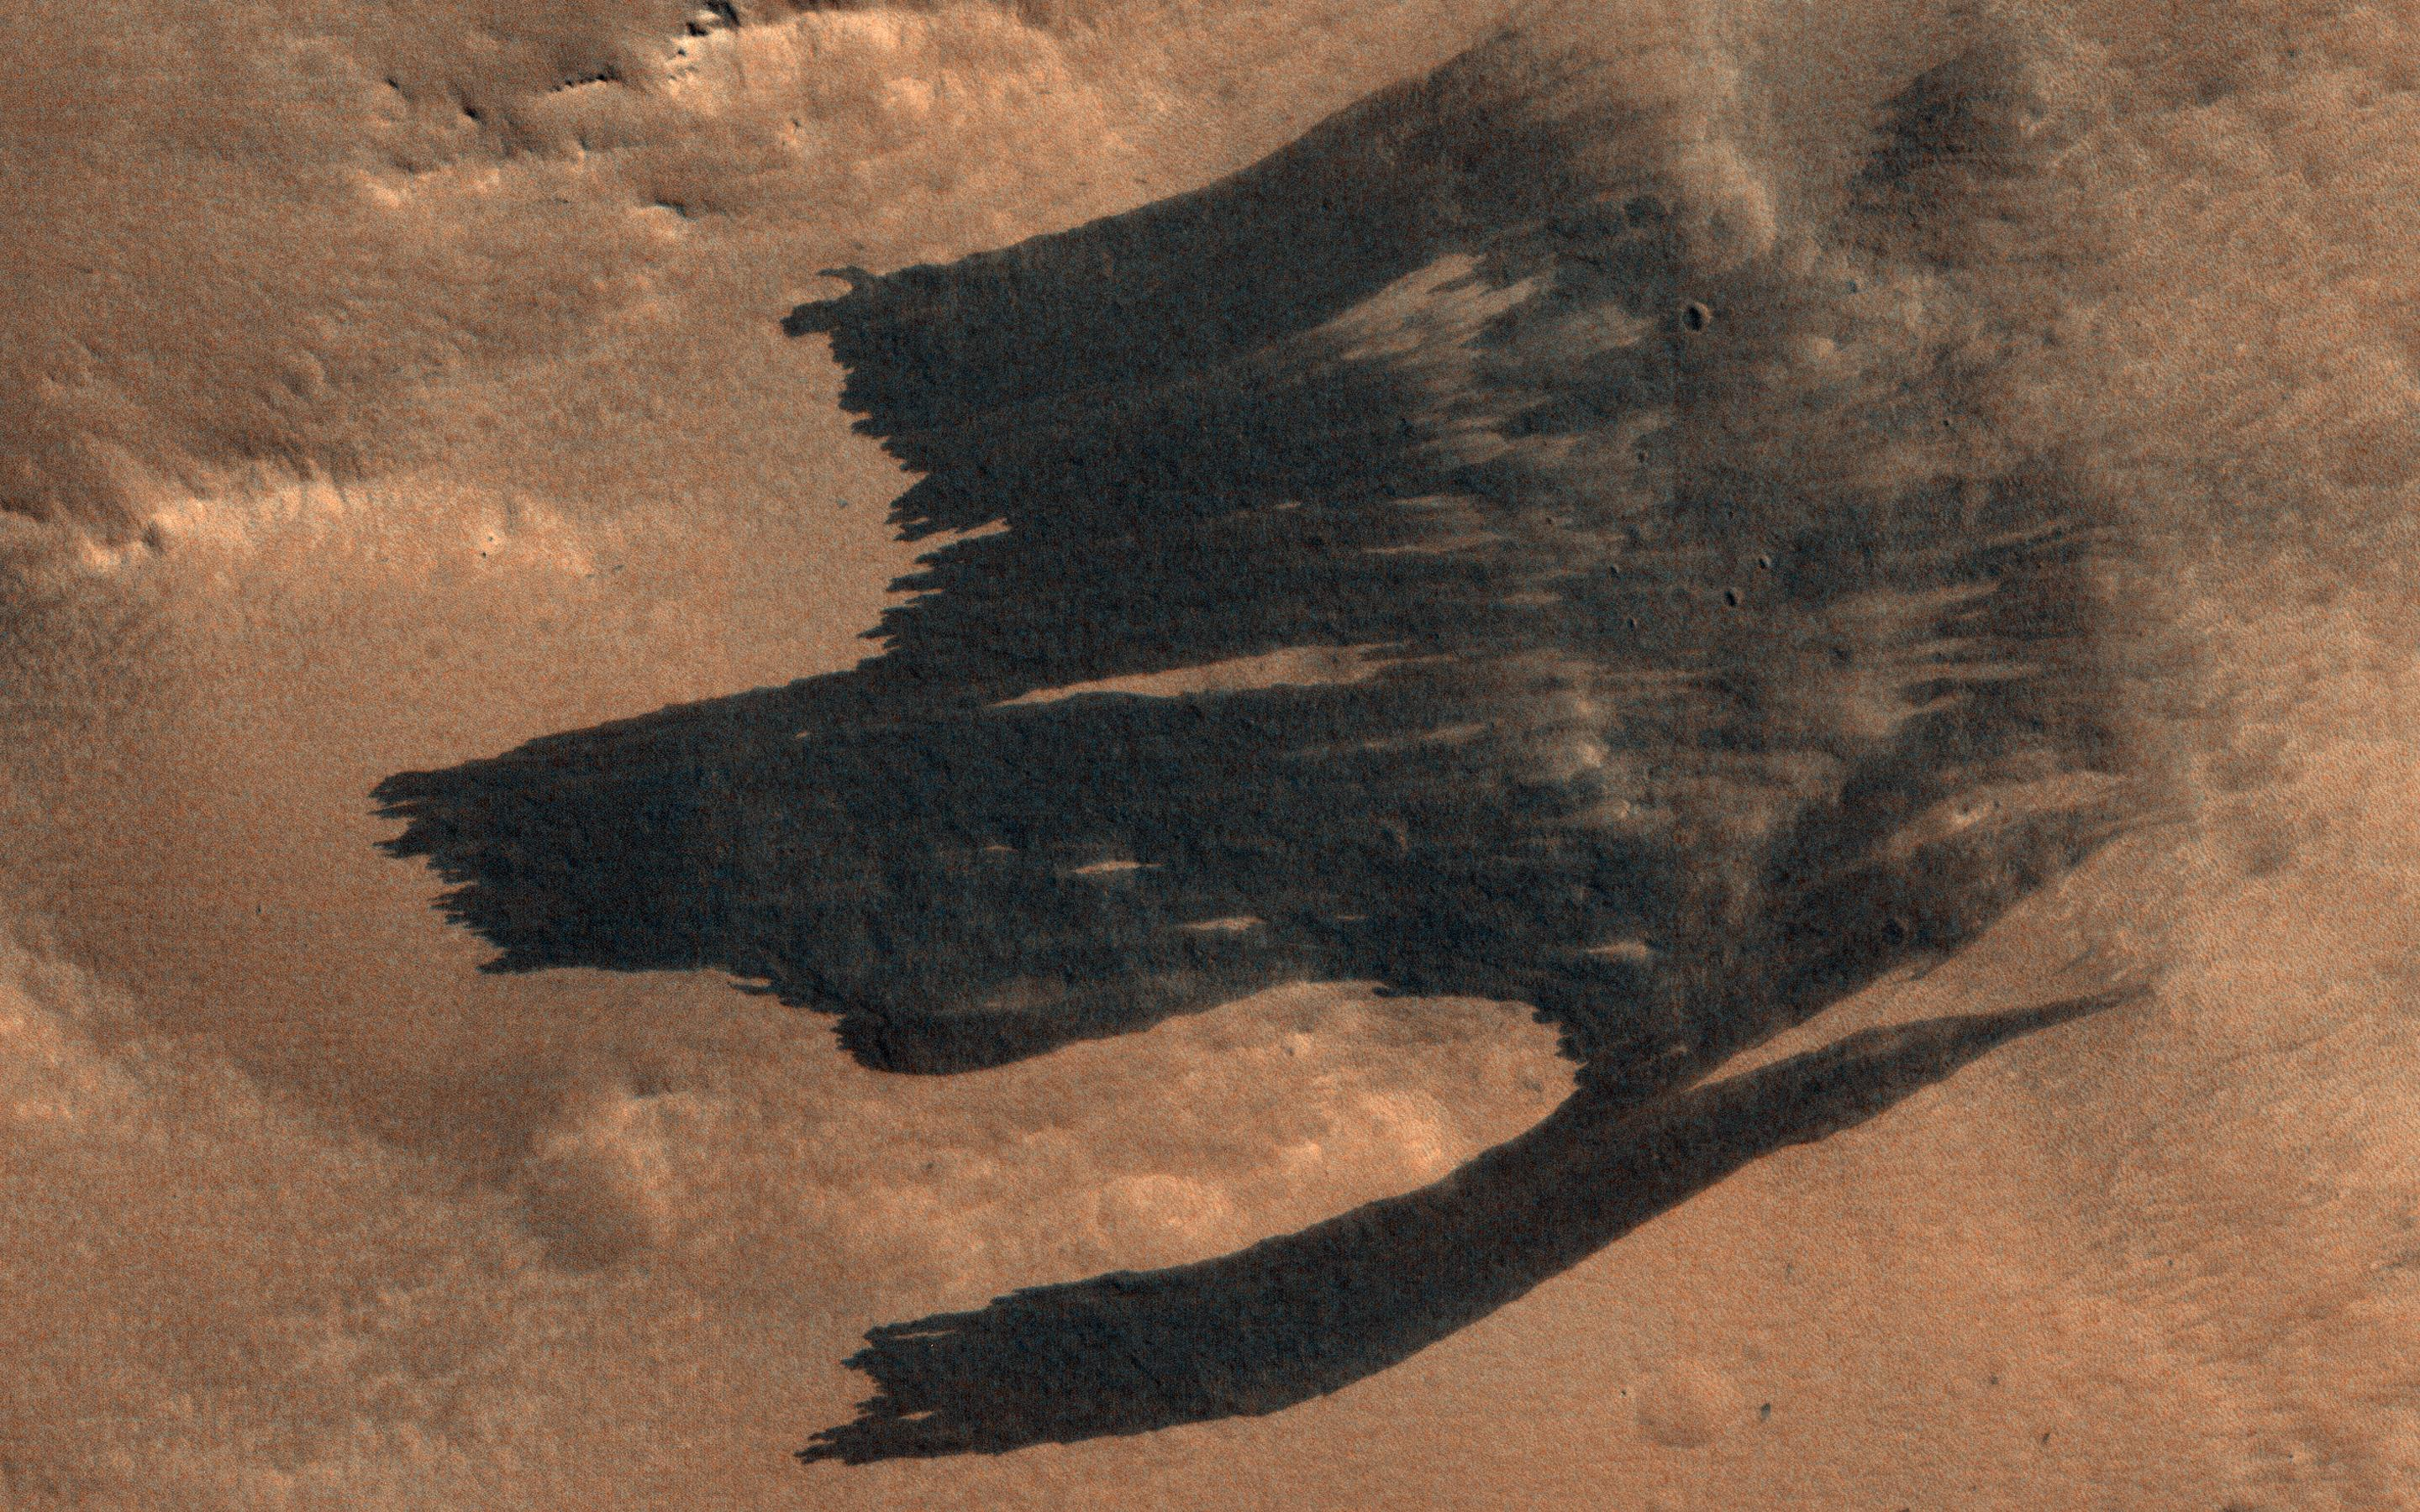 This image acquired on January 19, 2019 by NASAs Mars Reconnaissance Orbiter, shows what appears to be a new impact cluster and, extending downhill from the craters, new dark slope streaks.